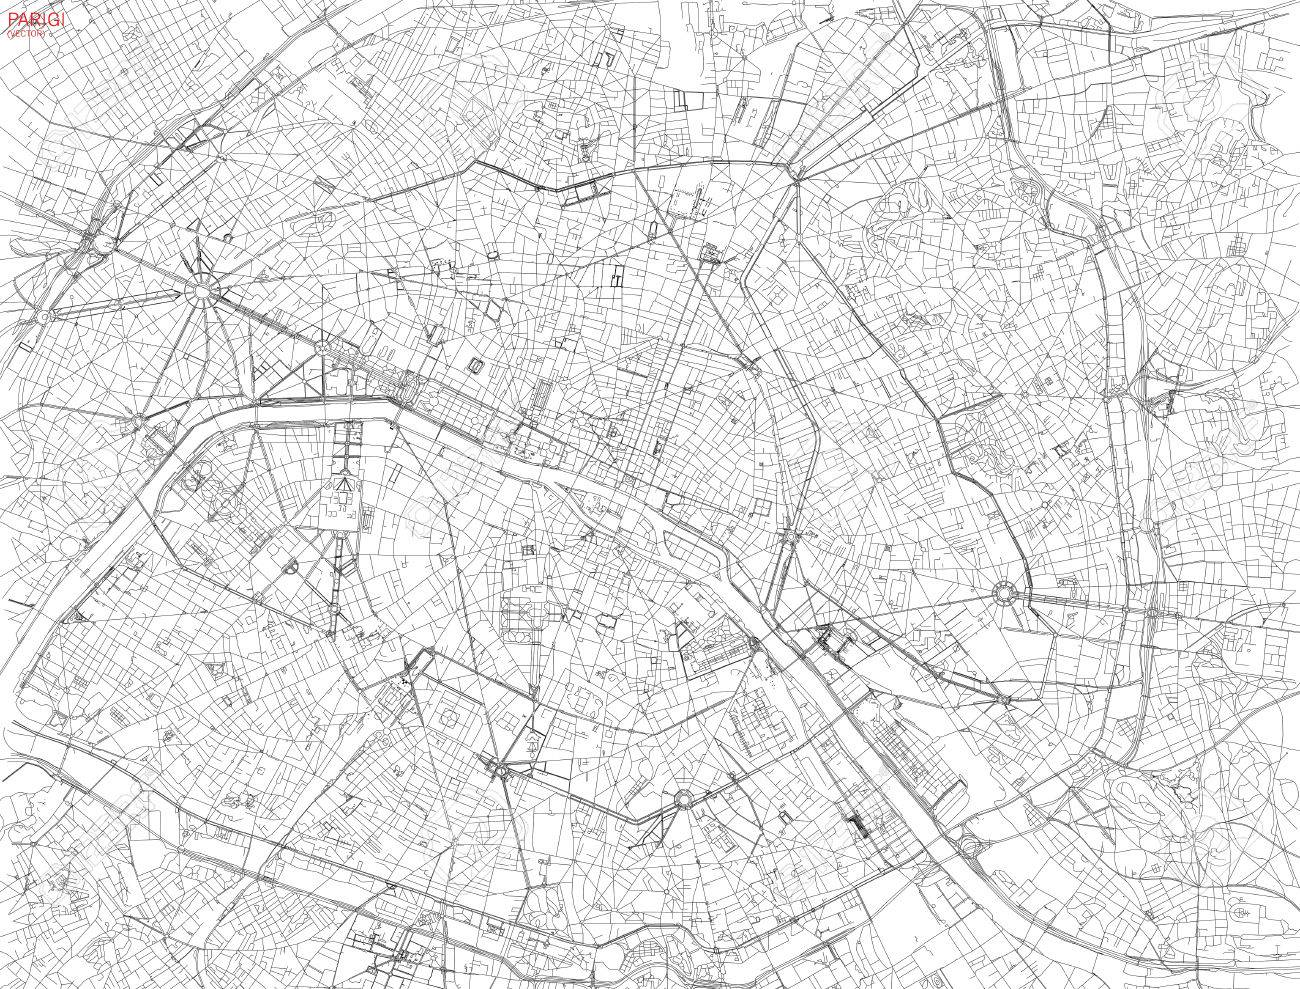 Map of Paris, satellite view, streets and highways, France Satellite Map Of Paris France on topographic map of paris france, online map of paris france, detailed map of paris france, road map of paris france, mapquest paris france, satellite view of paris france, physical map of paris france,